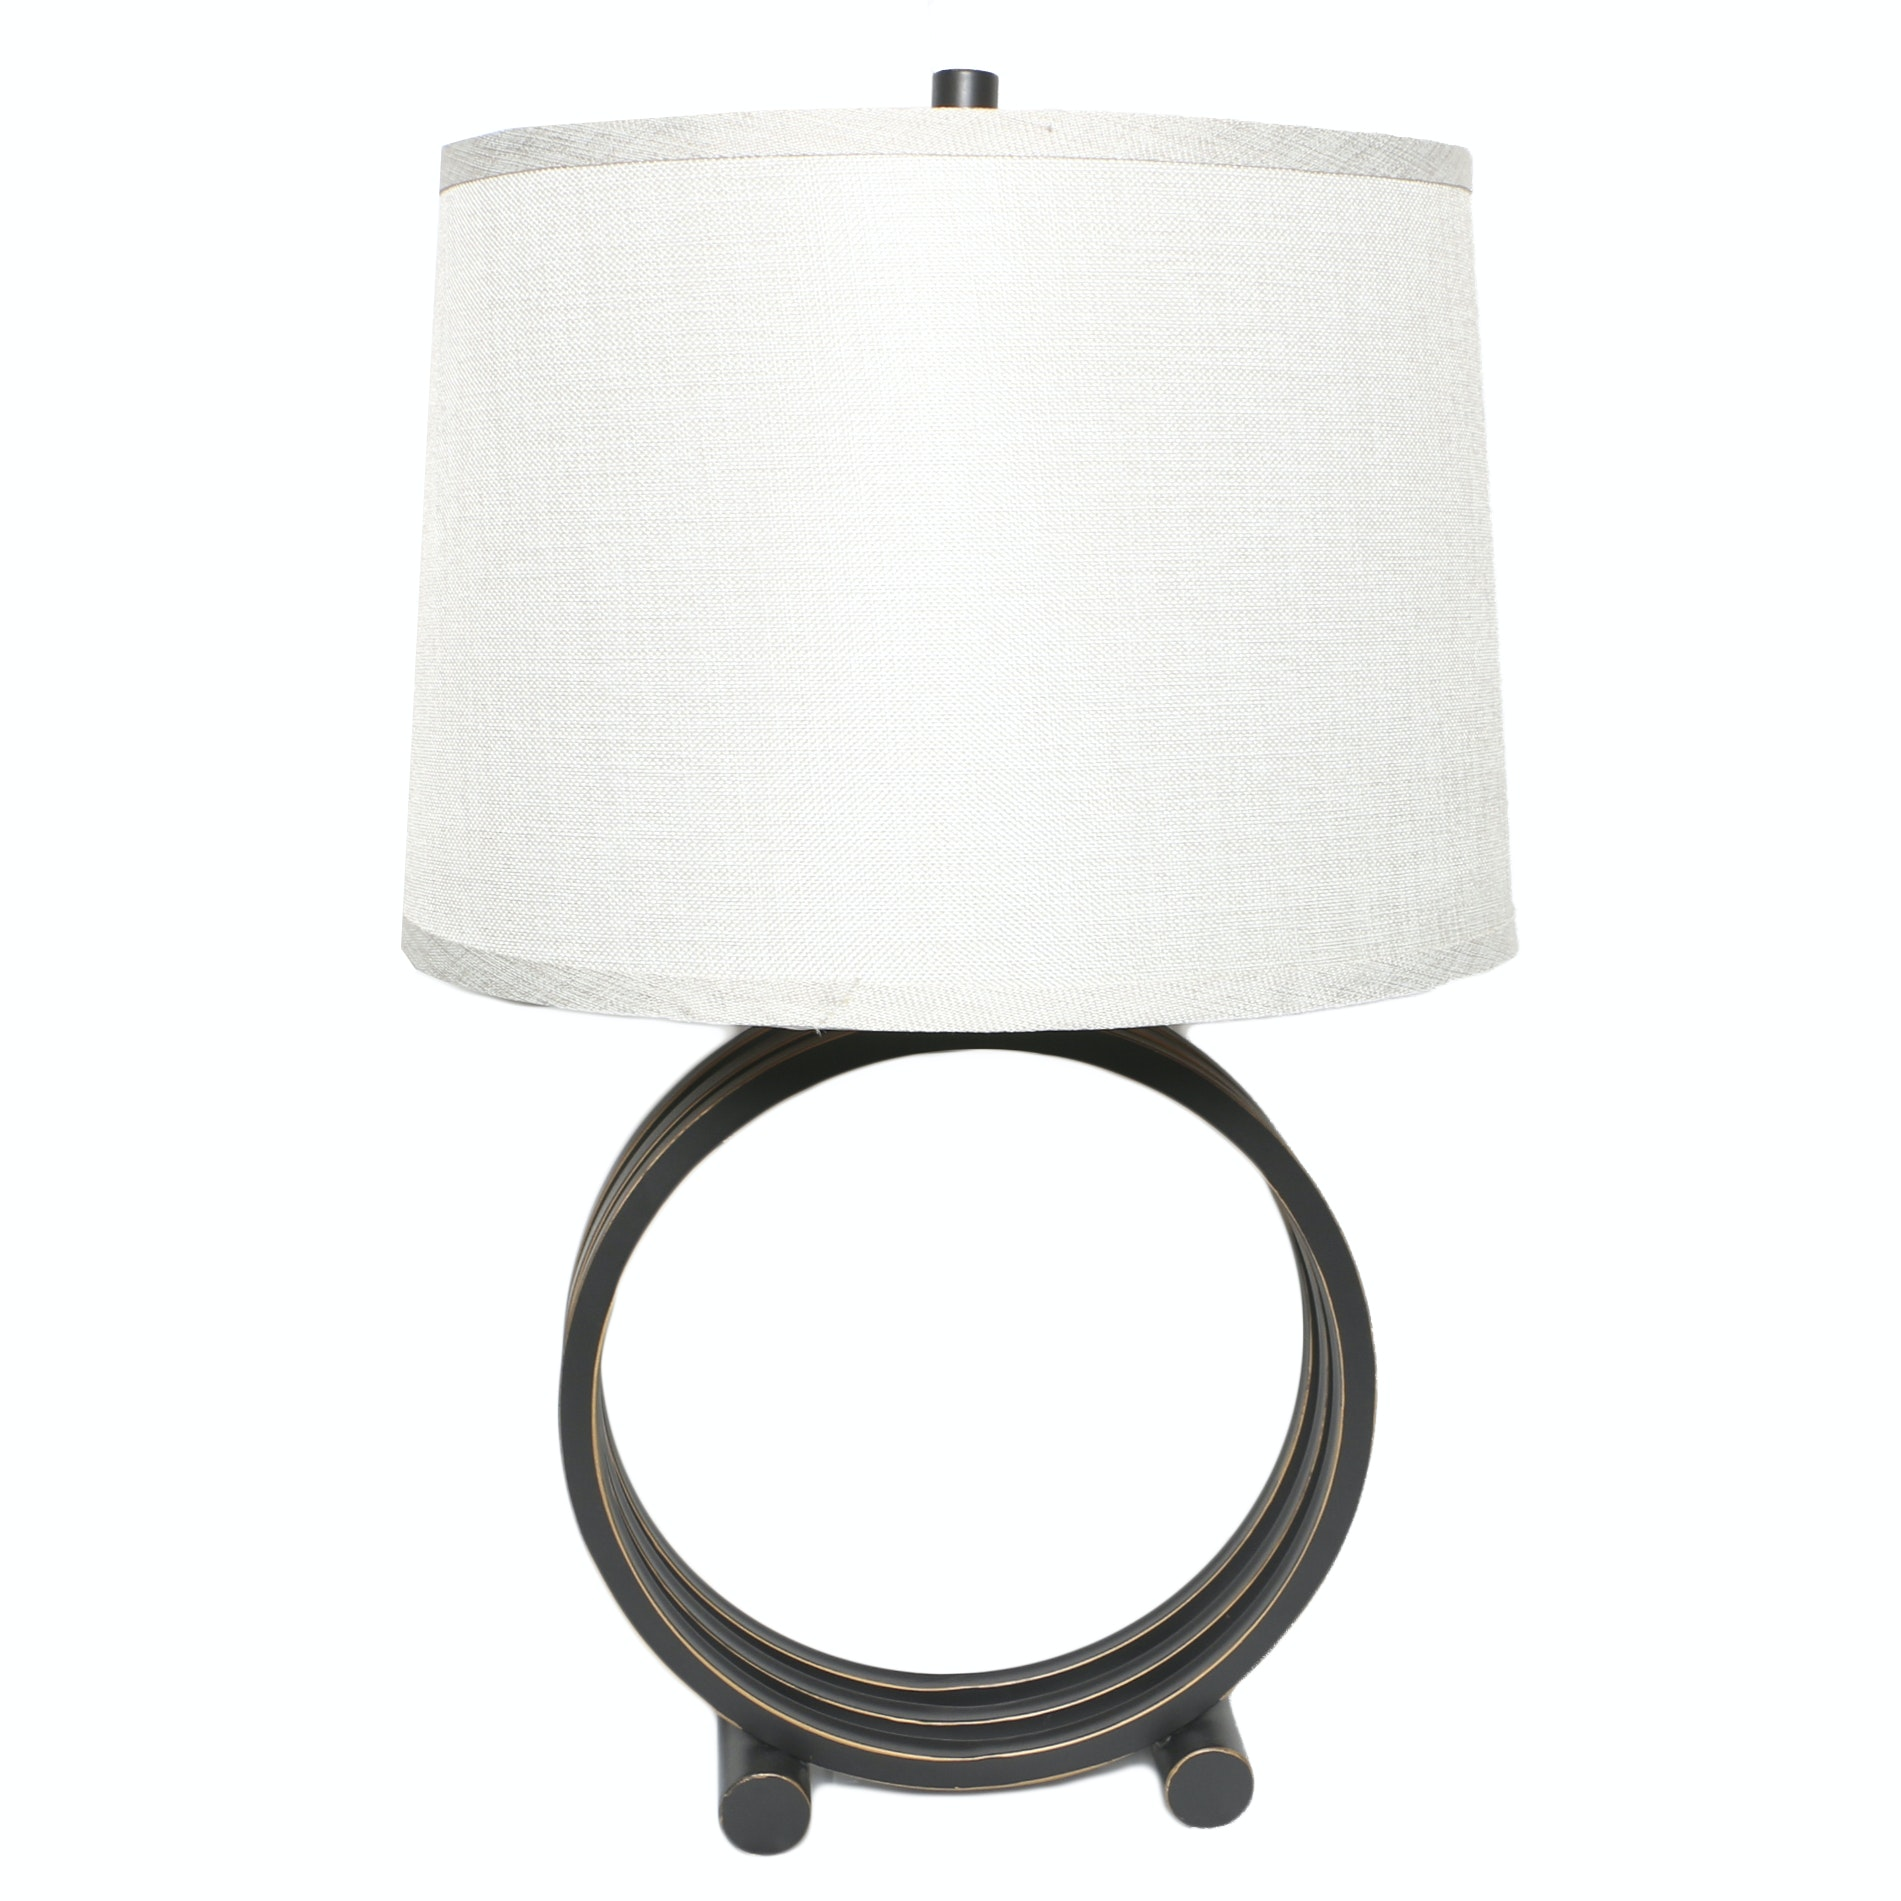 Bronze Colored Layered Metal Ring Table Lamp with Drum Shade